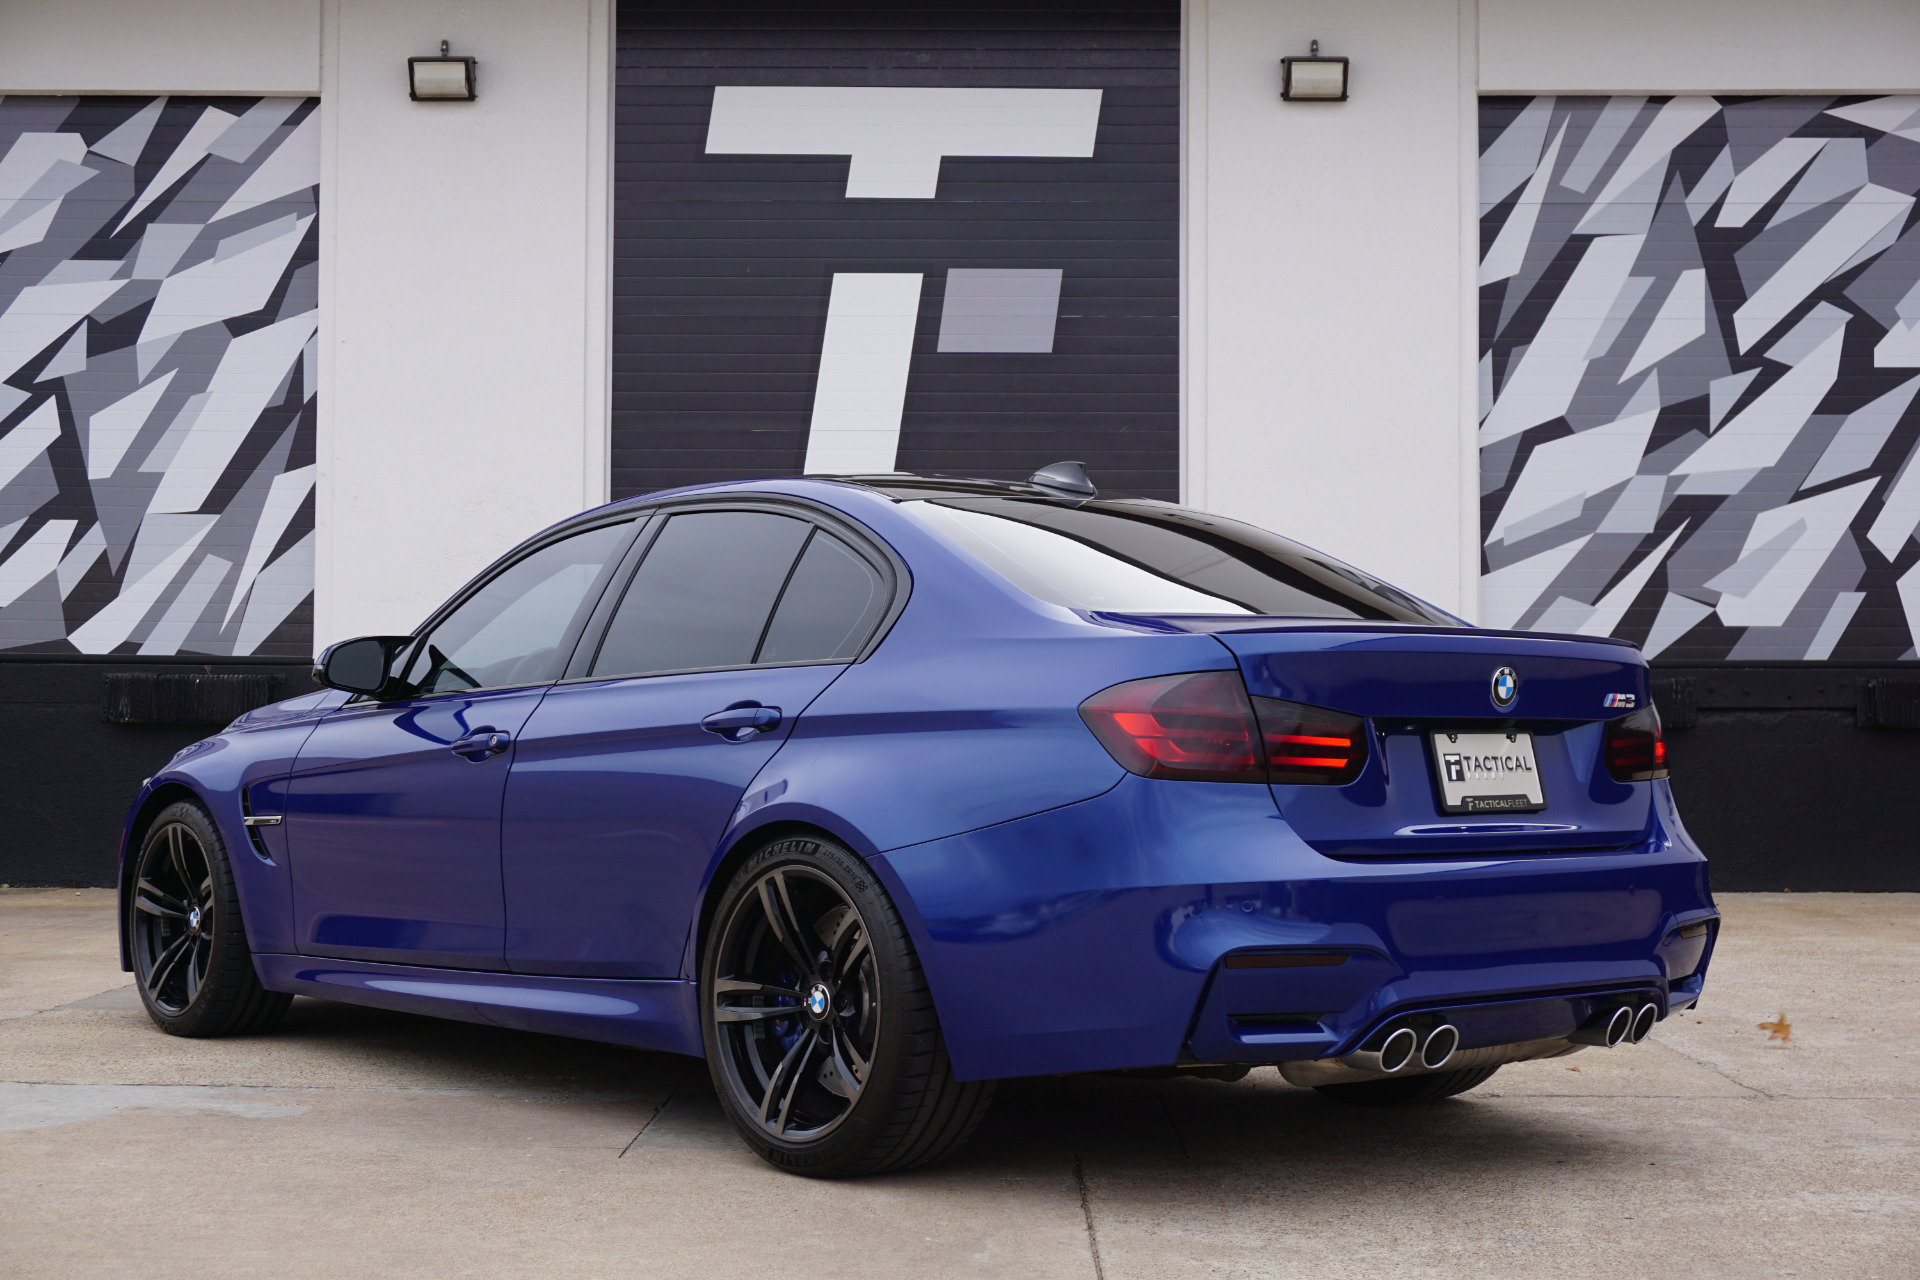 Used 2015 BMW M3 For Sale ($45,900) | Tactical Fleet Stock ...